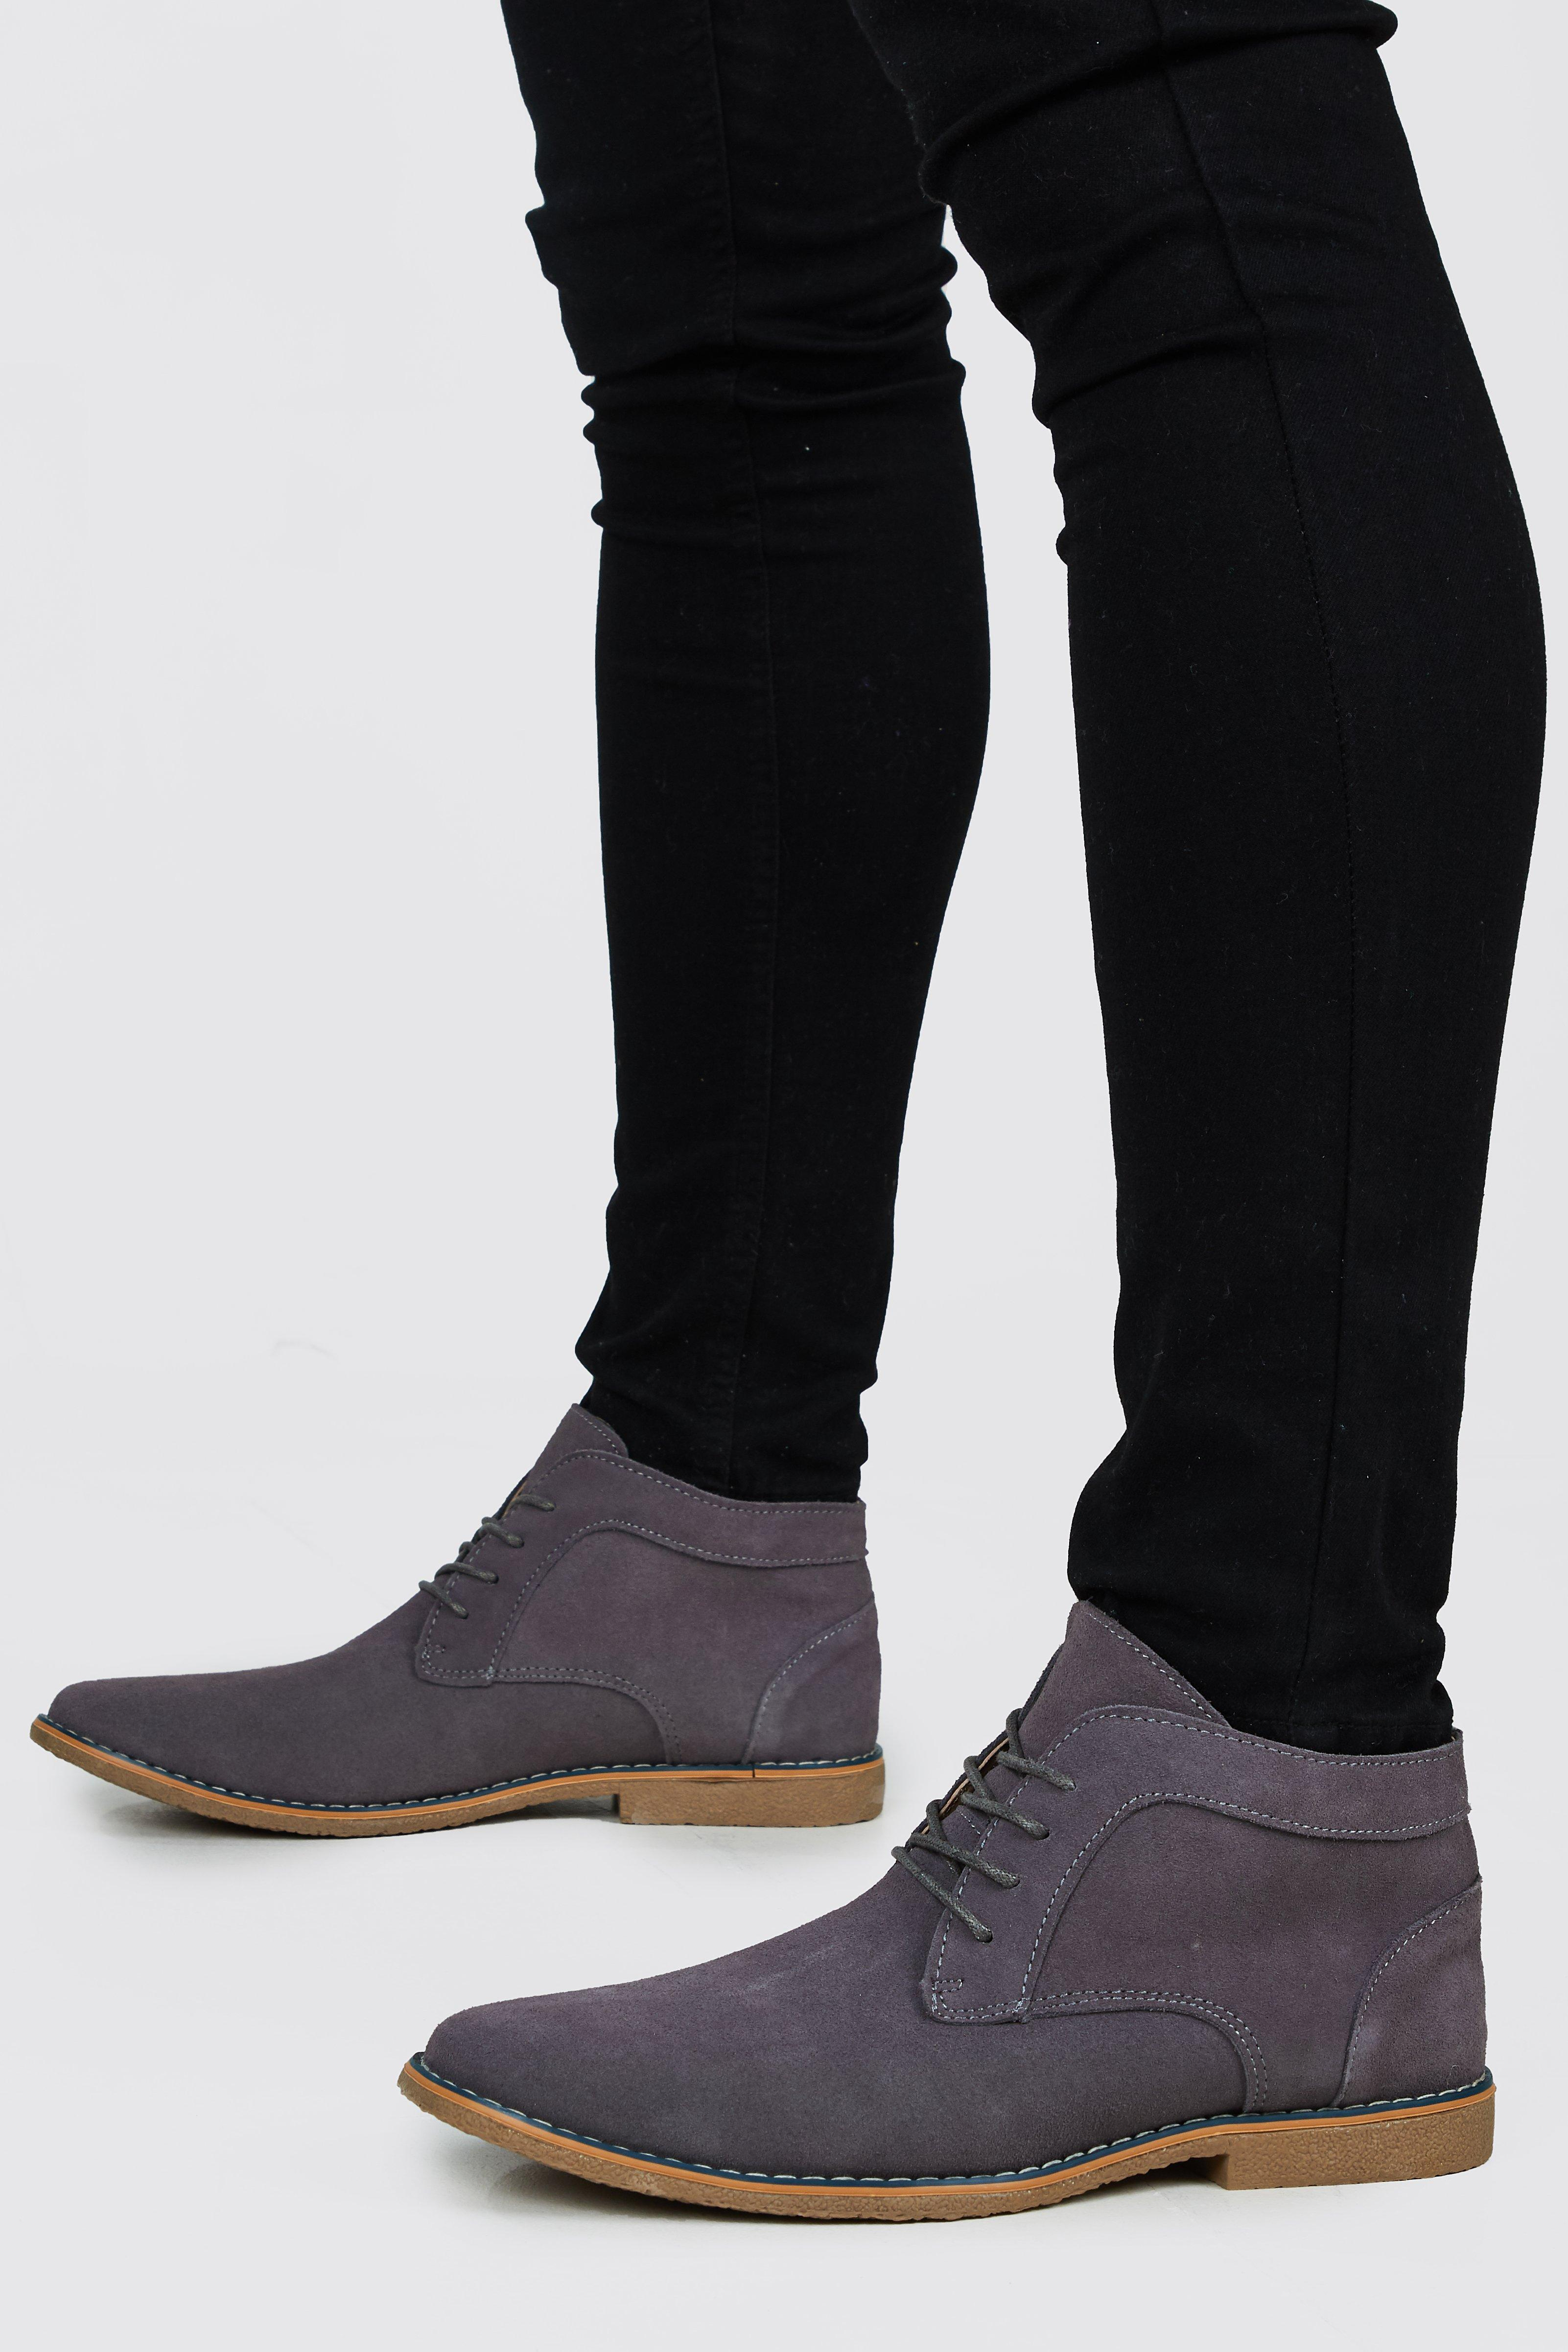 mens real suede desert boots - grey